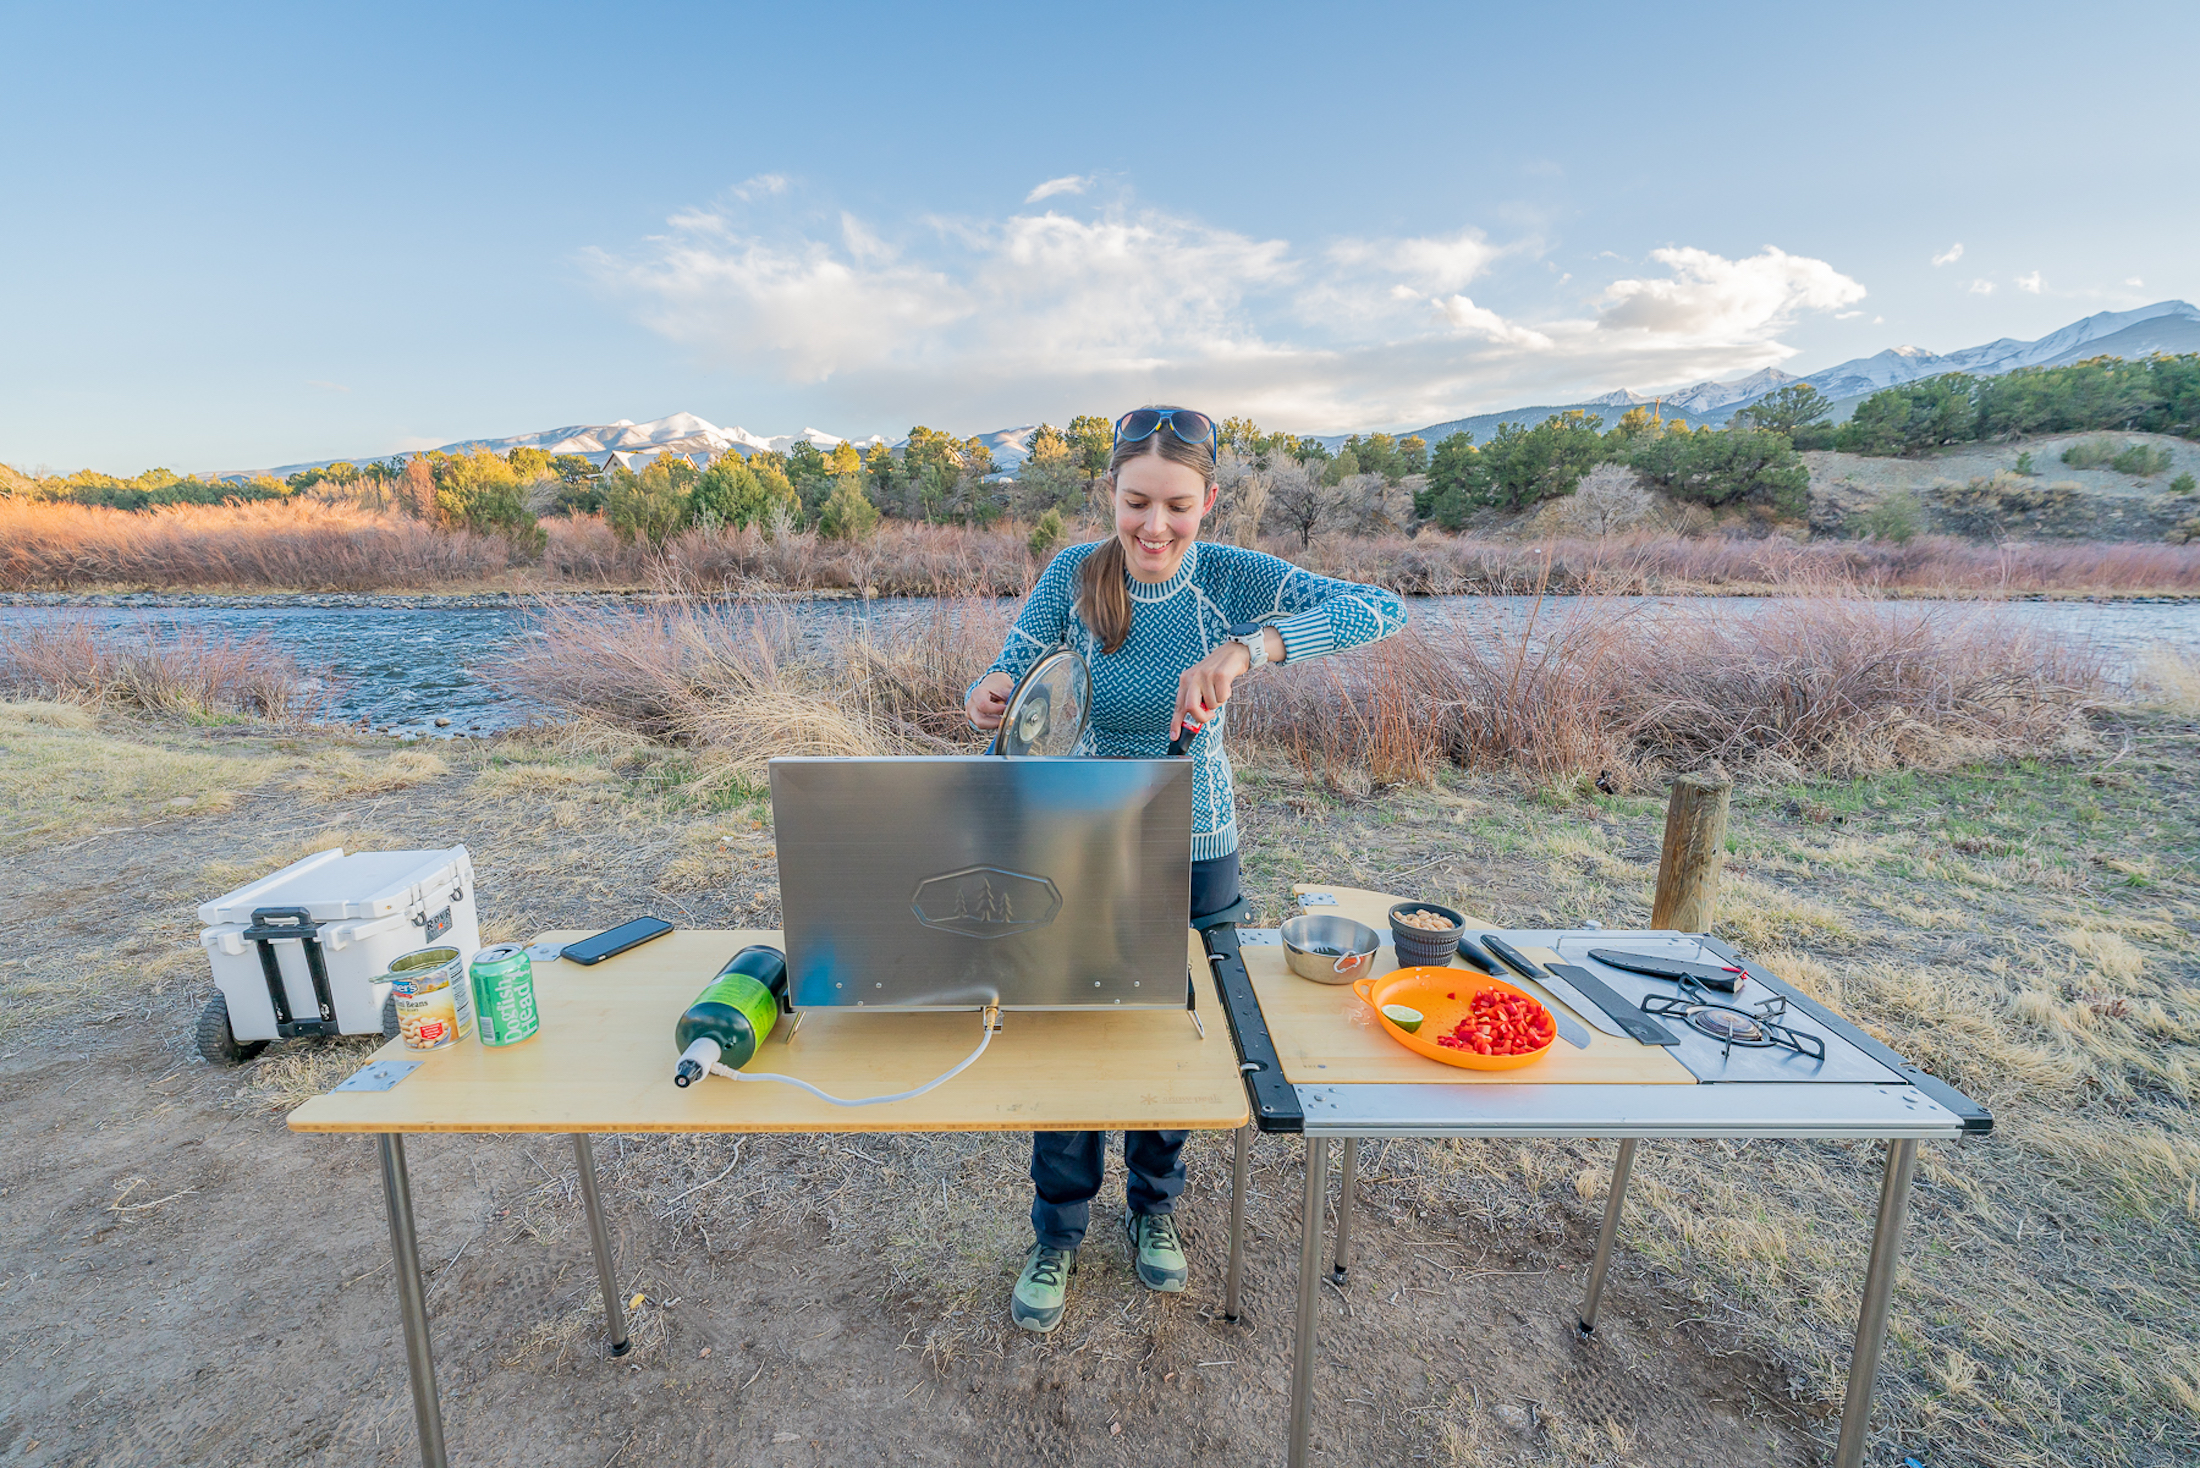 the author cooking on the GSI pinnacle stove and stirring food on a large camp table at basecamp